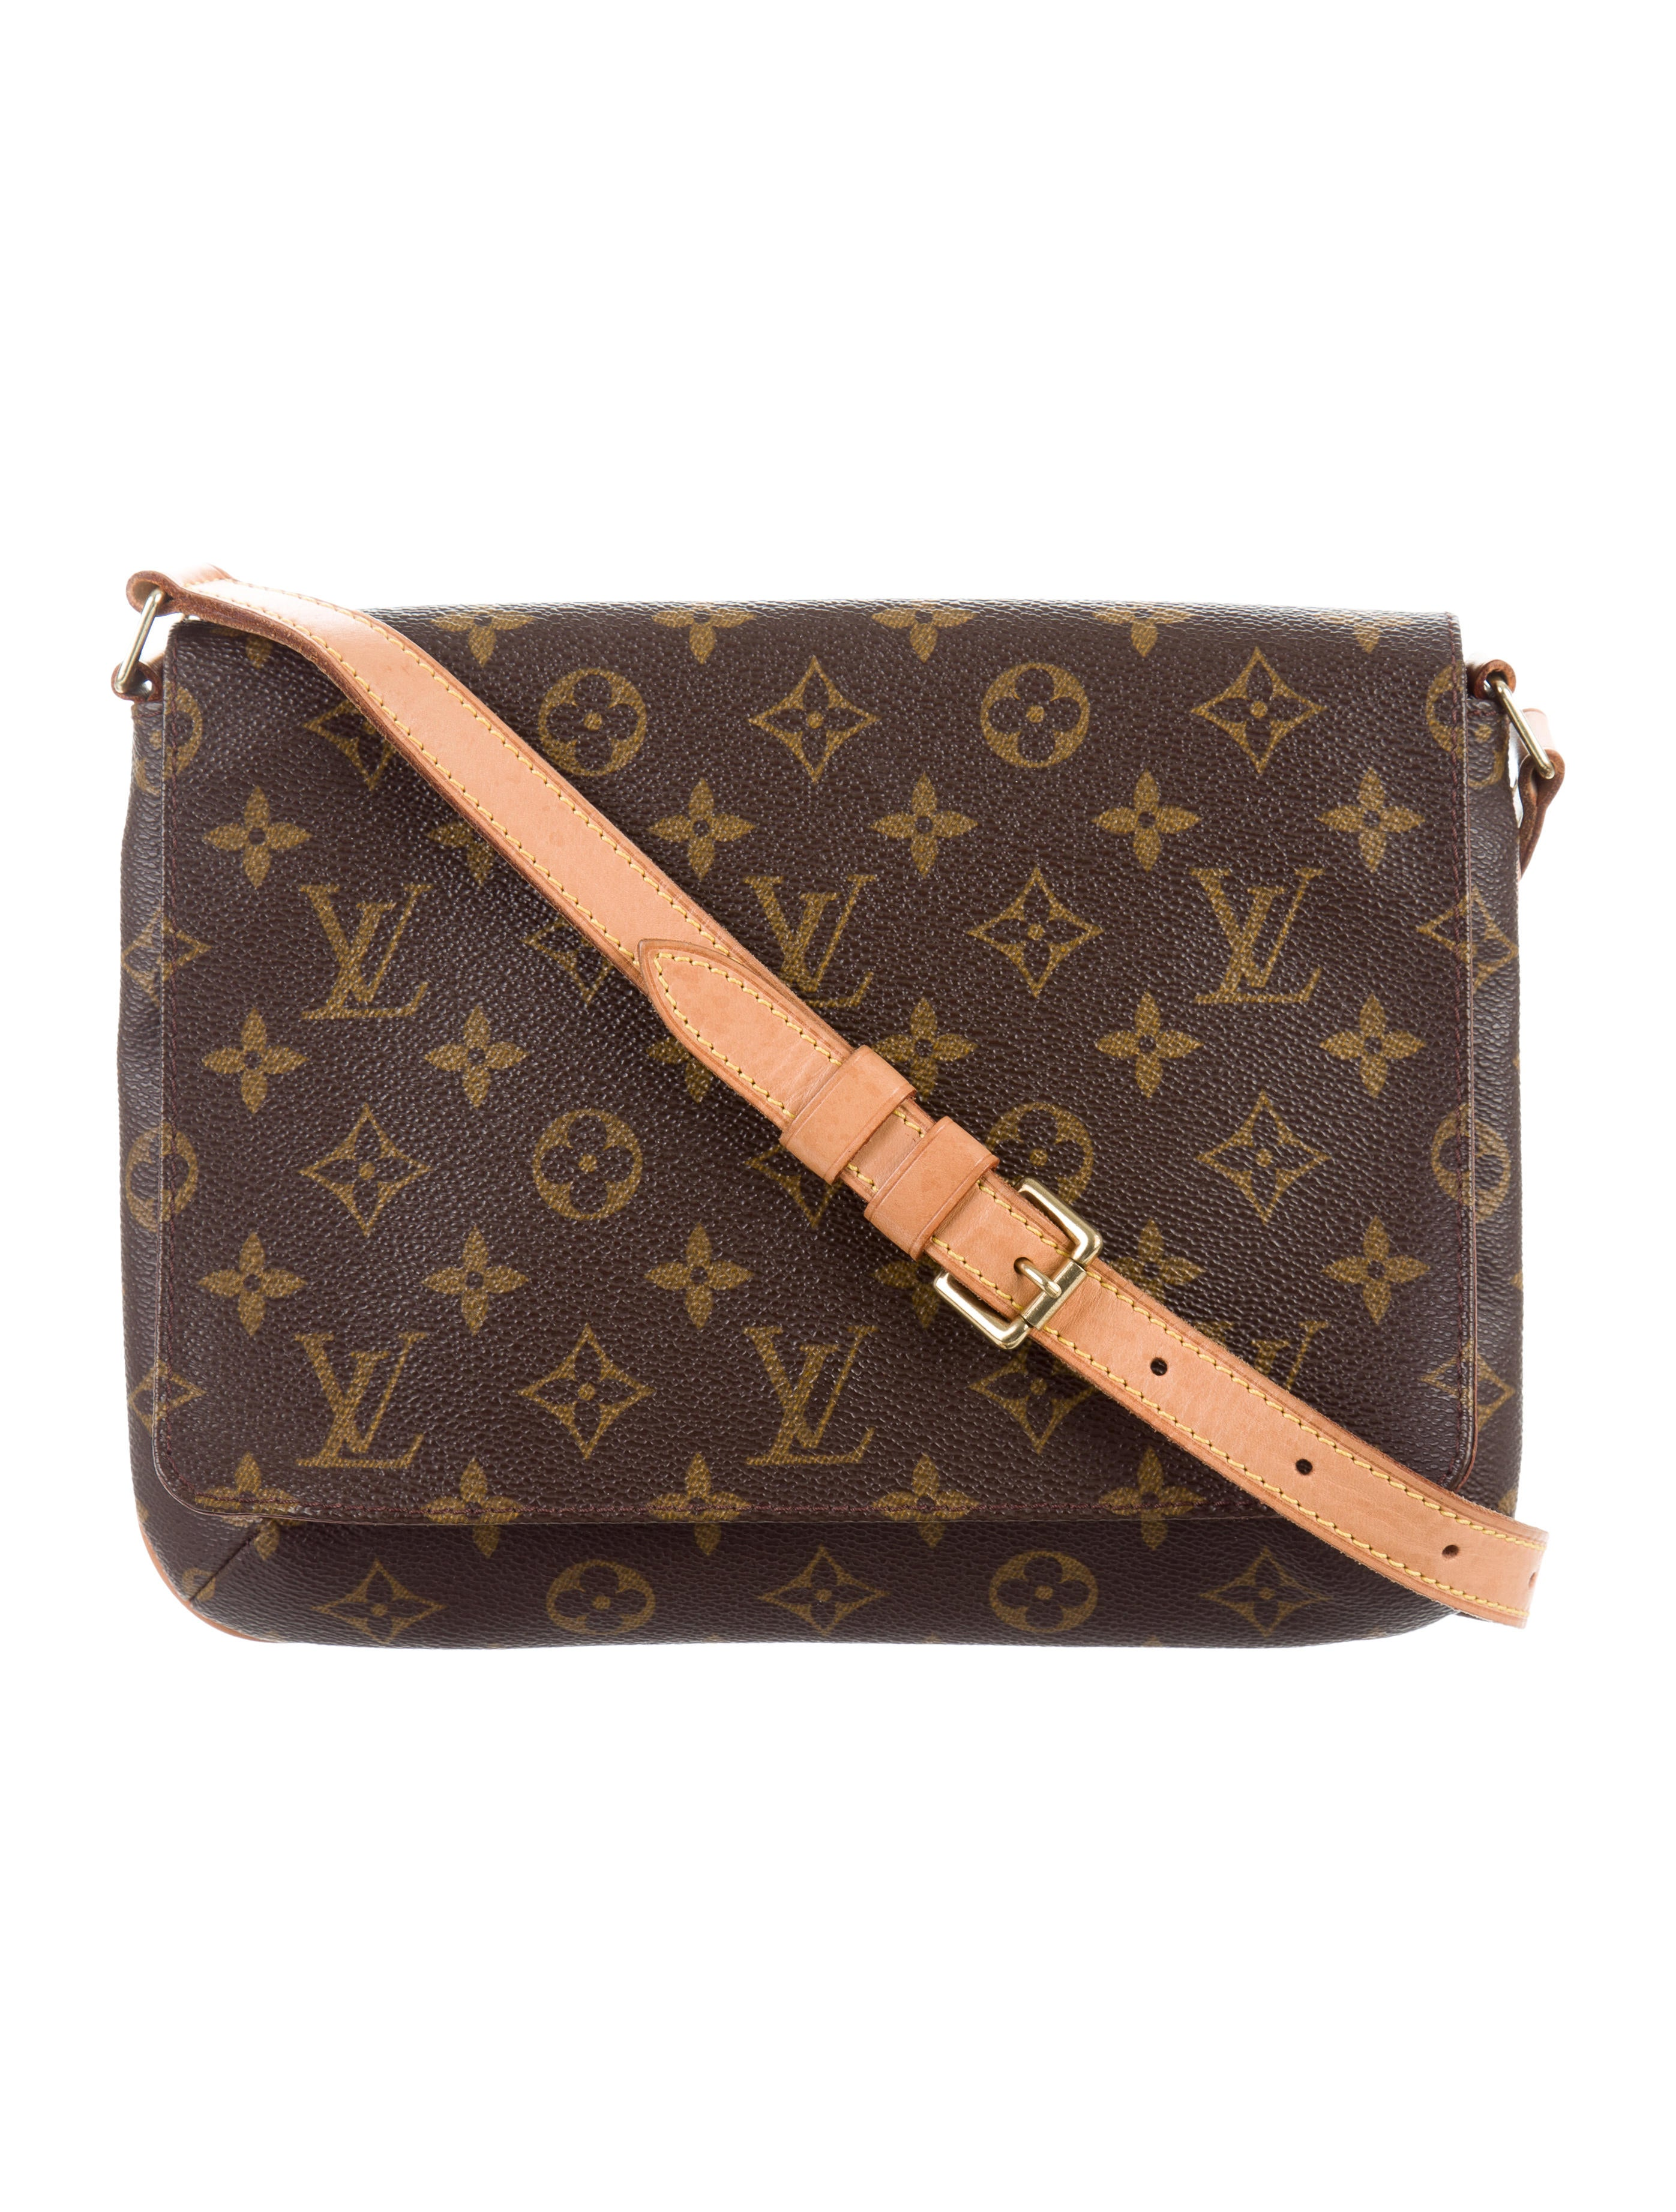 louis vuitton monogram musette tango bag handbags lou121955 the realreal. Black Bedroom Furniture Sets. Home Design Ideas